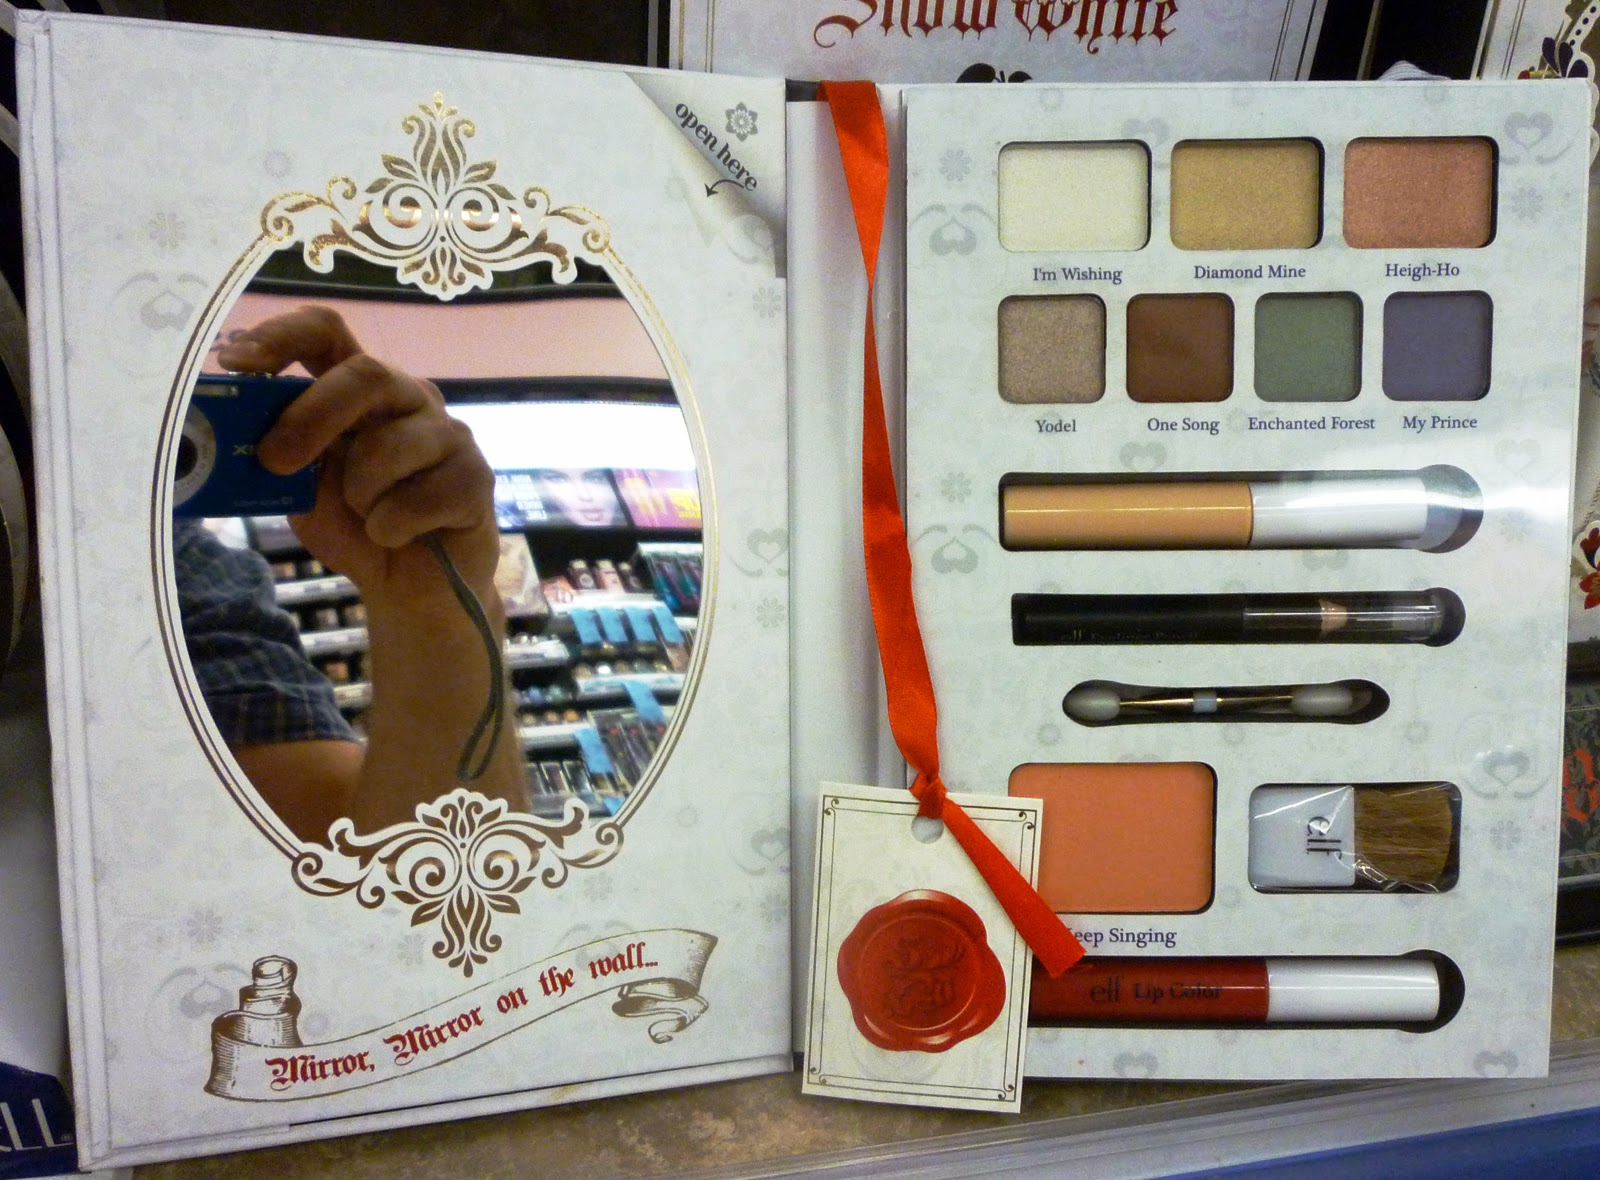 And The Makeup Palette